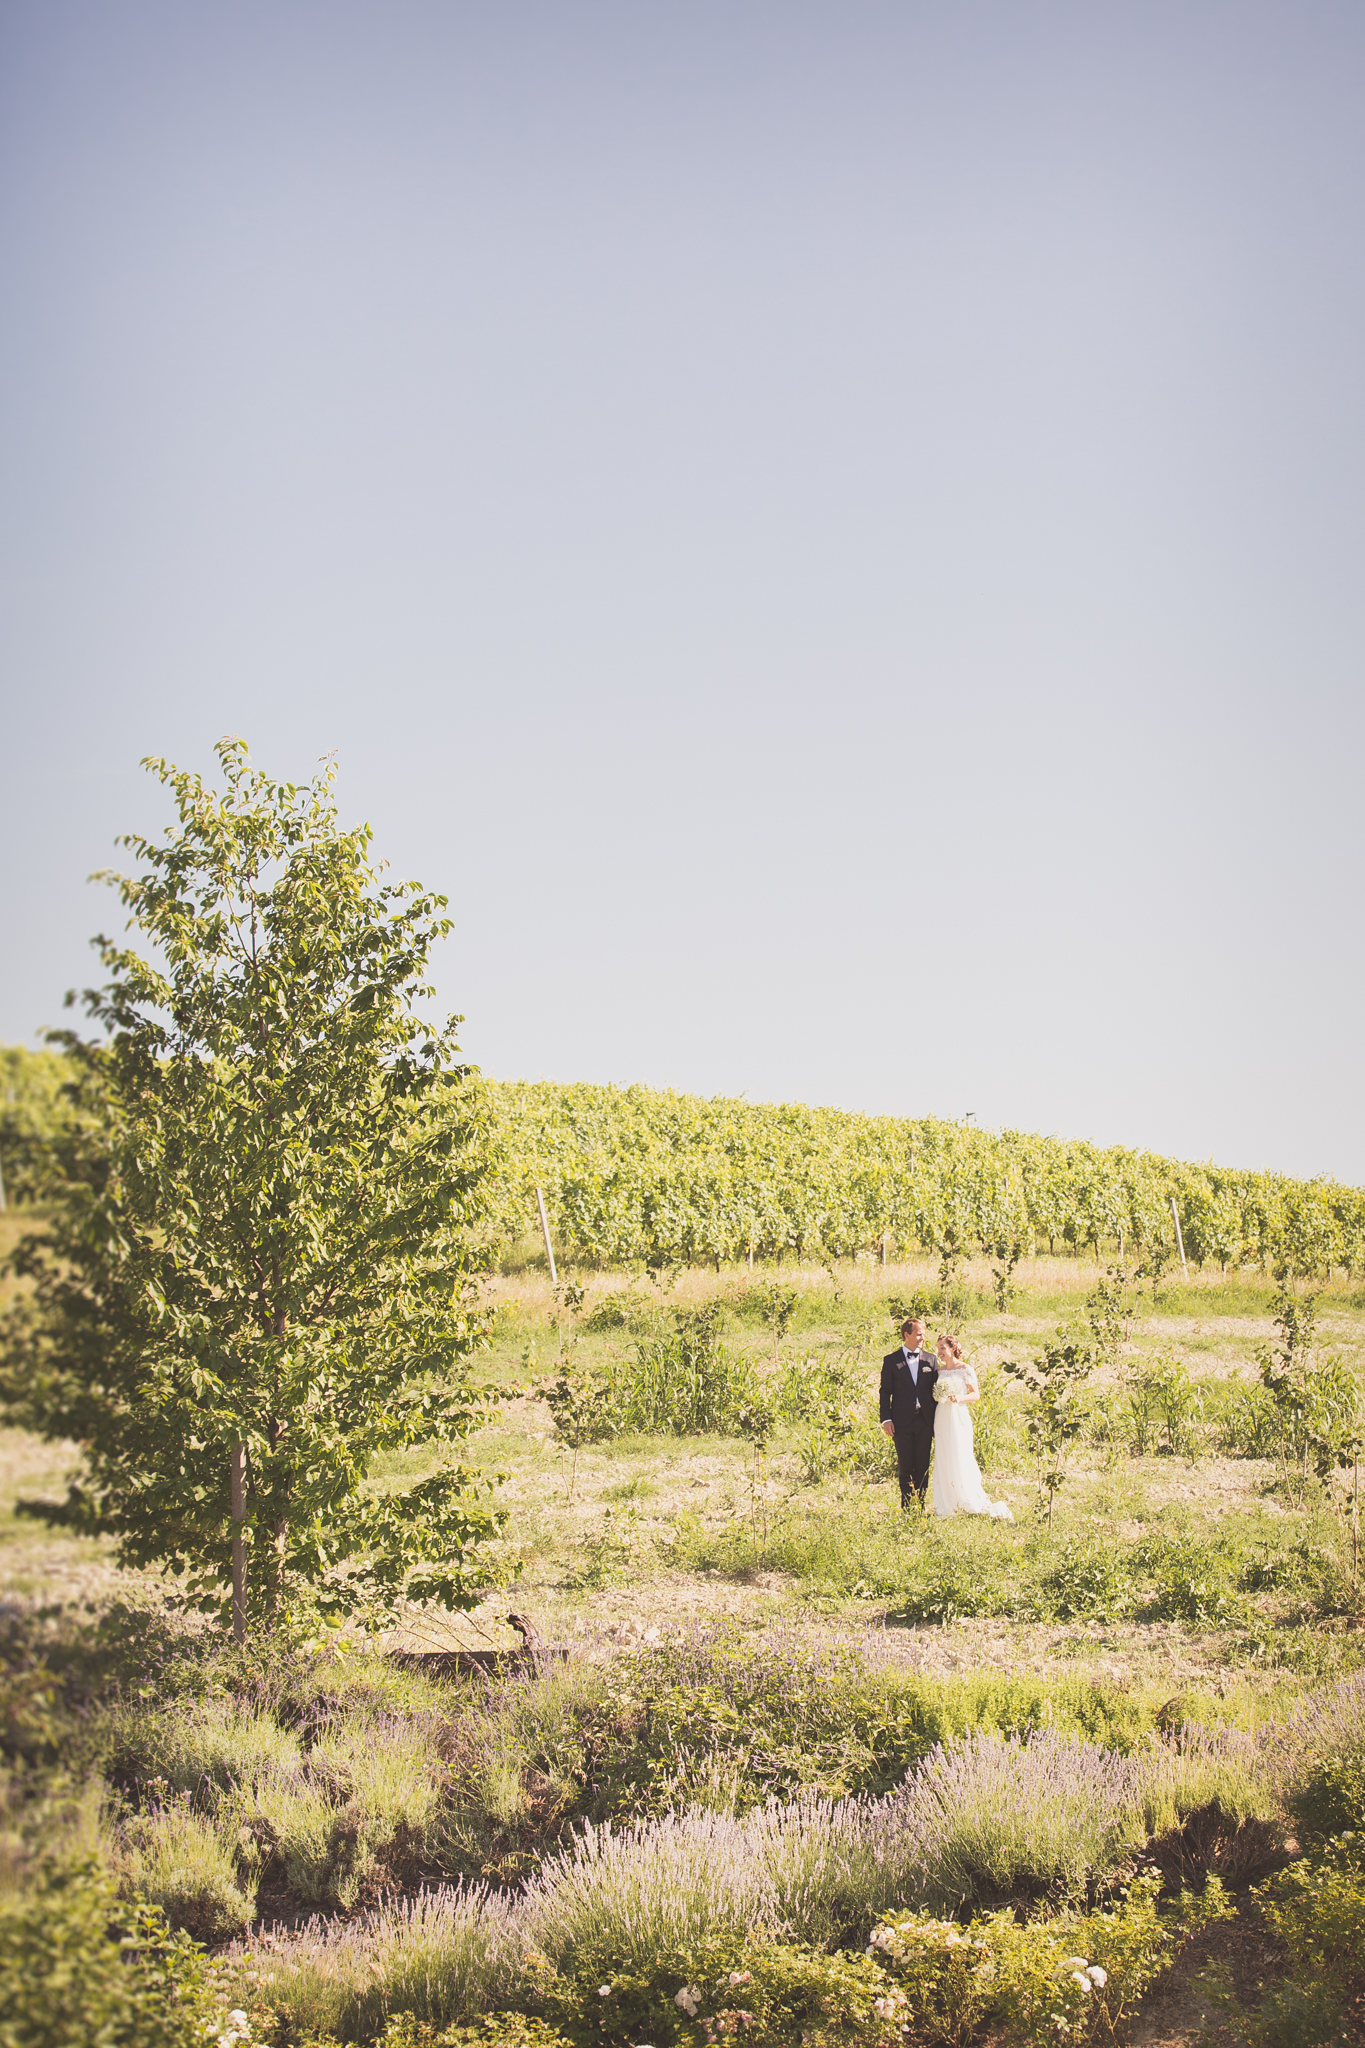 Cathrine+Andreas_Bryllup-118